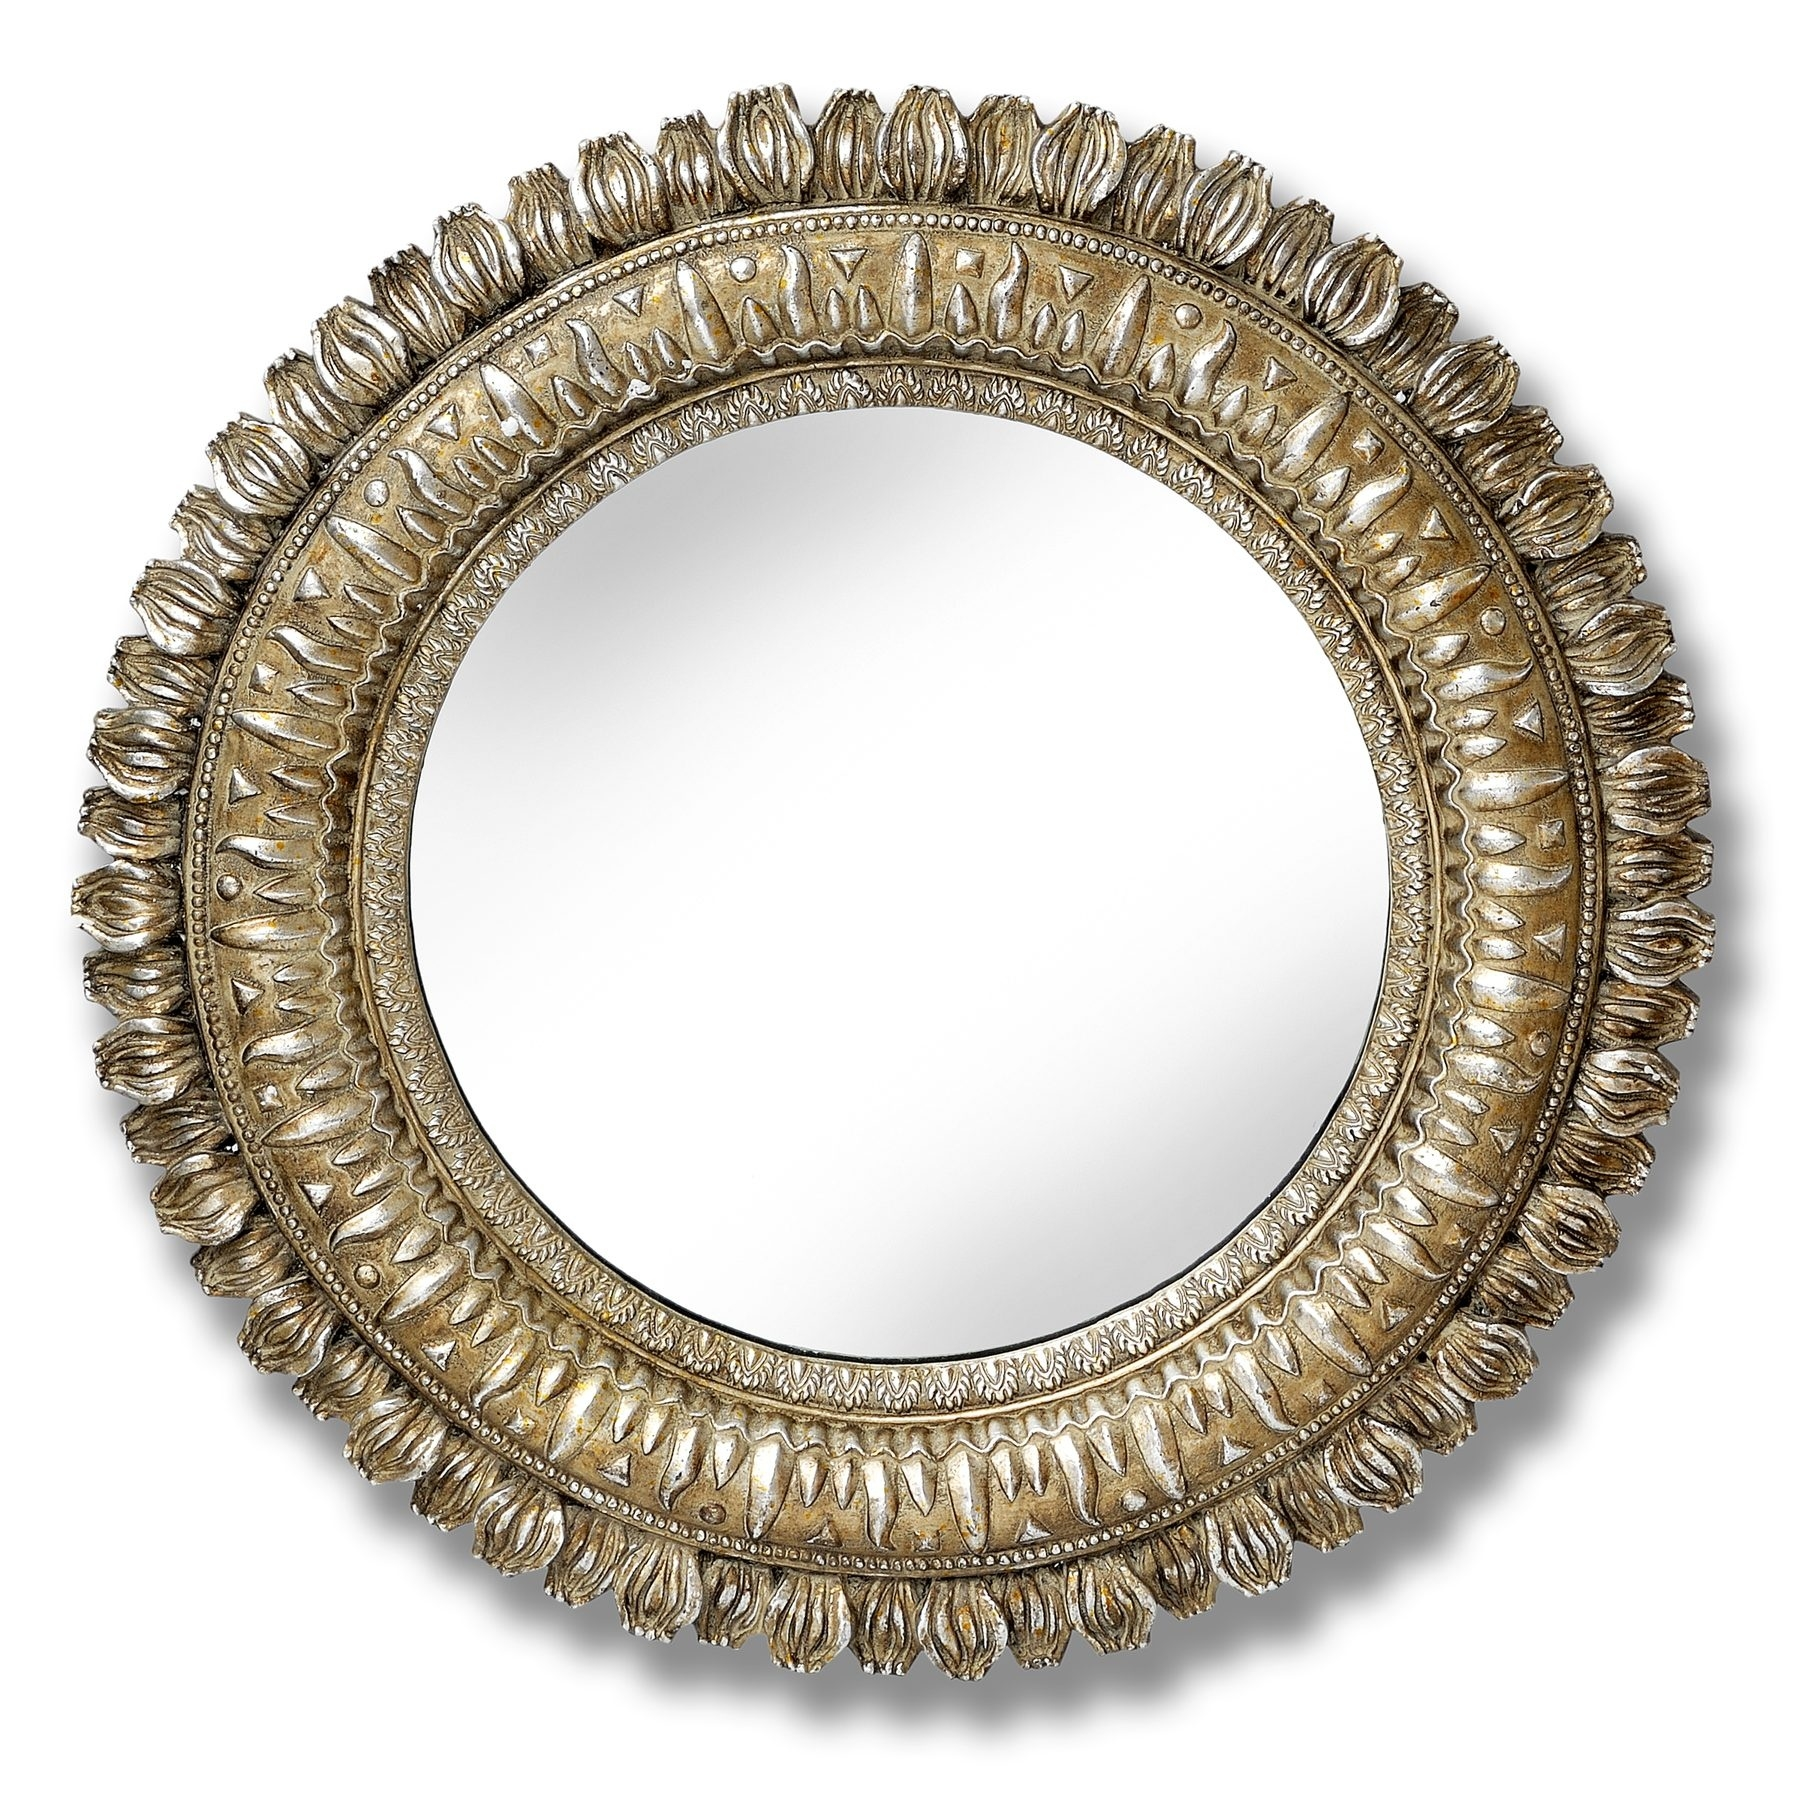 Silver Round Wall Mirror Swanky Interiors In Round Mirrors For Sale (Image 11 of 15)